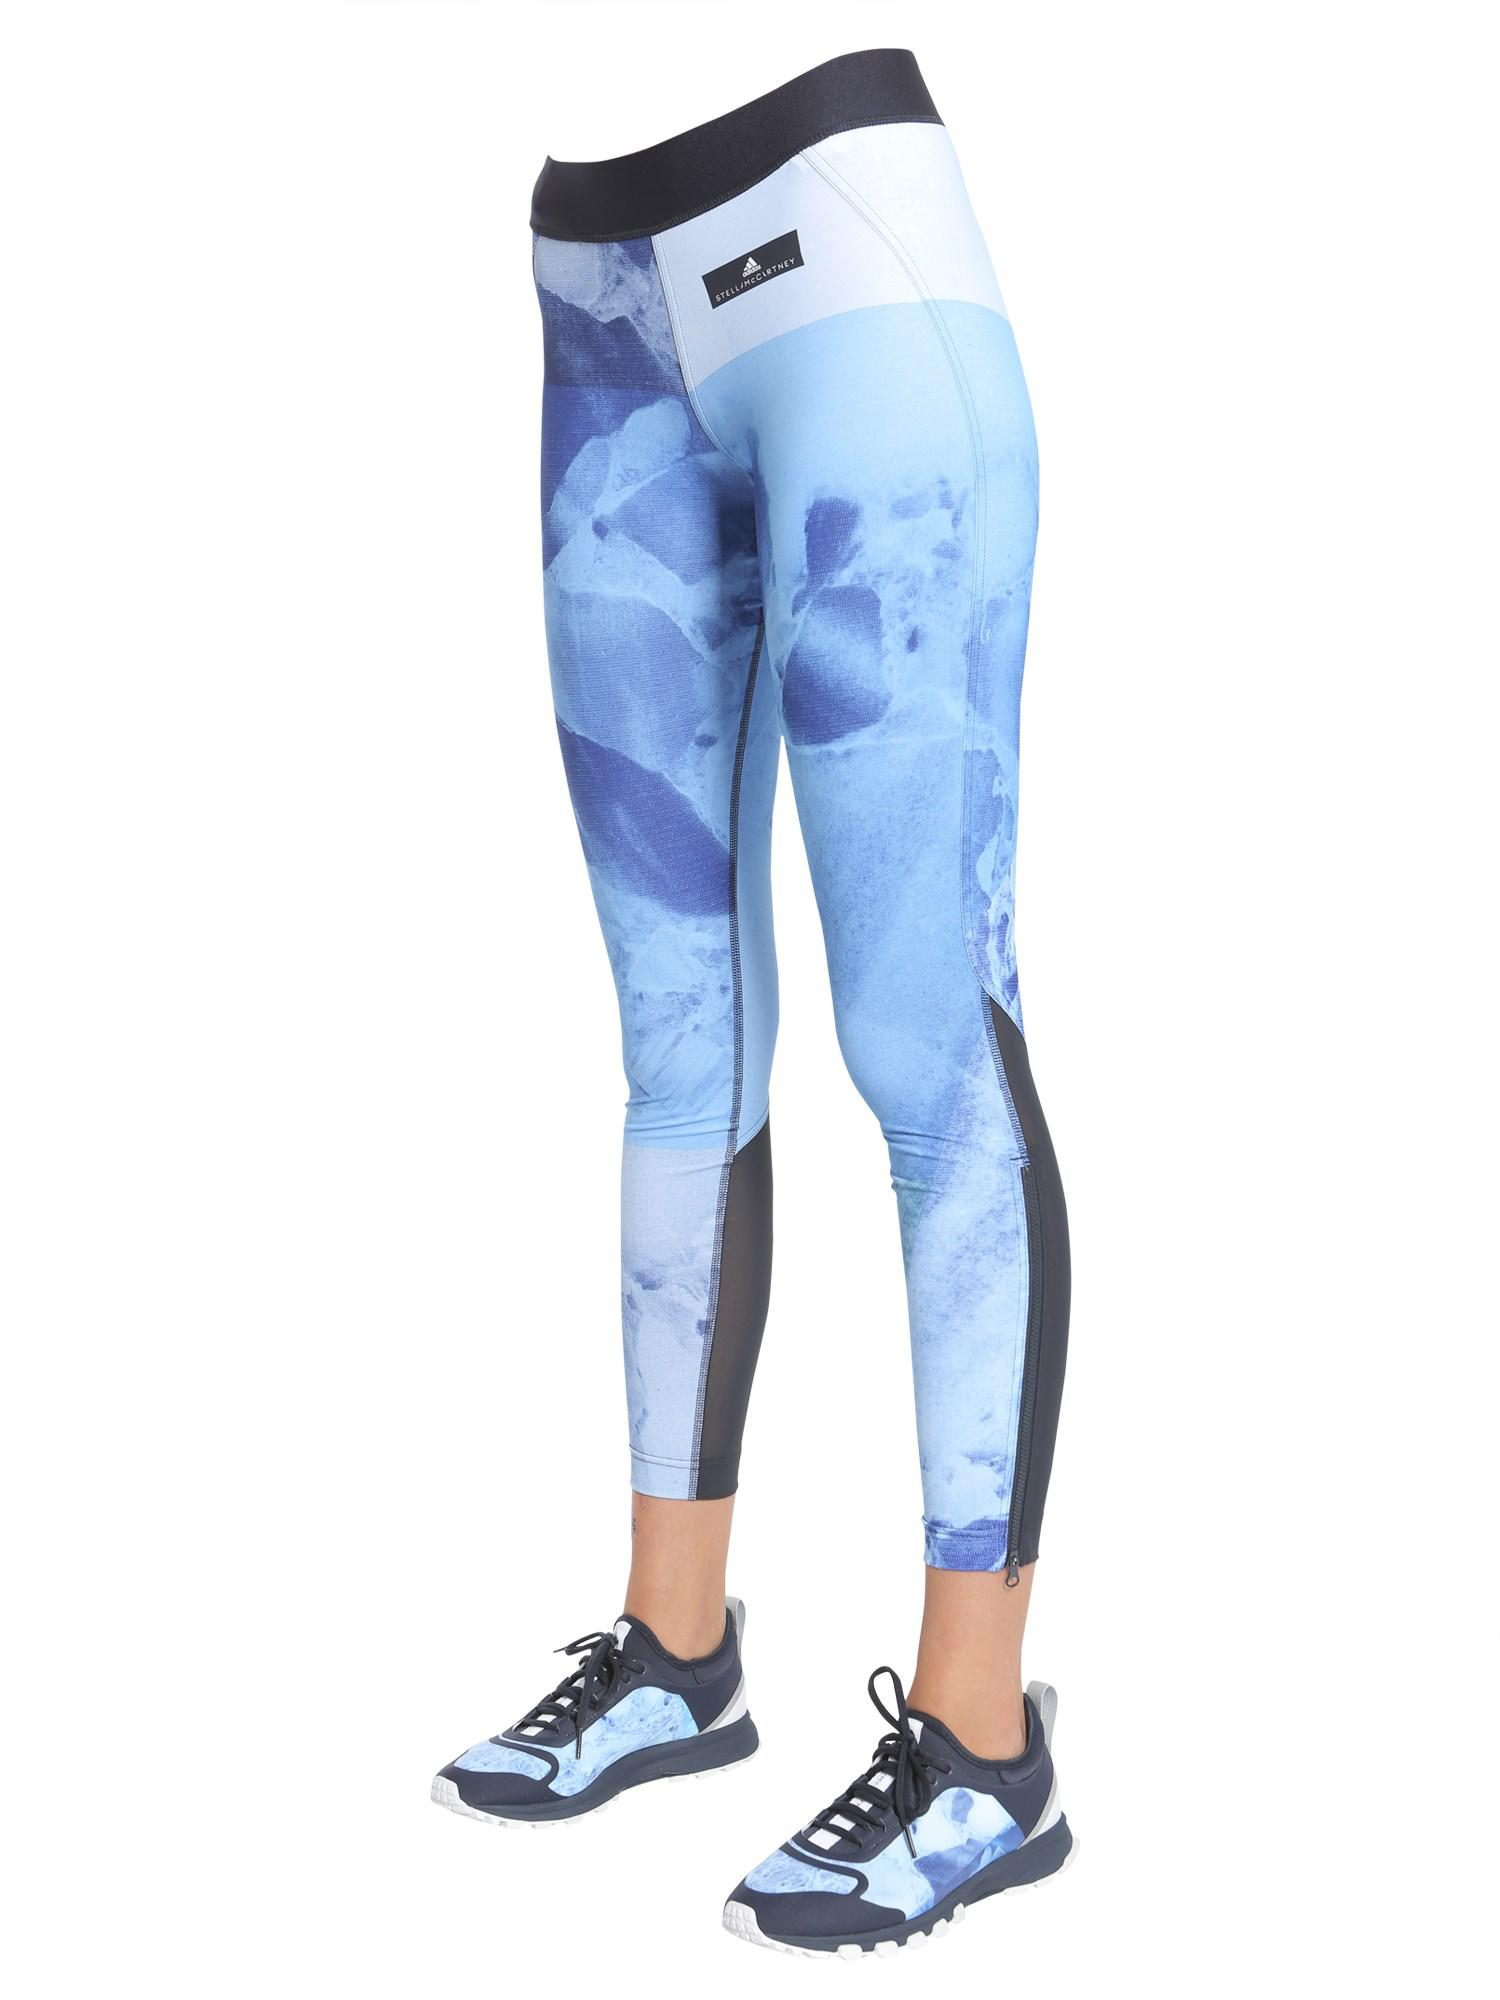 newest 3de48 38913 Lyst - Adidas By Stella Mccartney Tight Run Climacool Stone ...